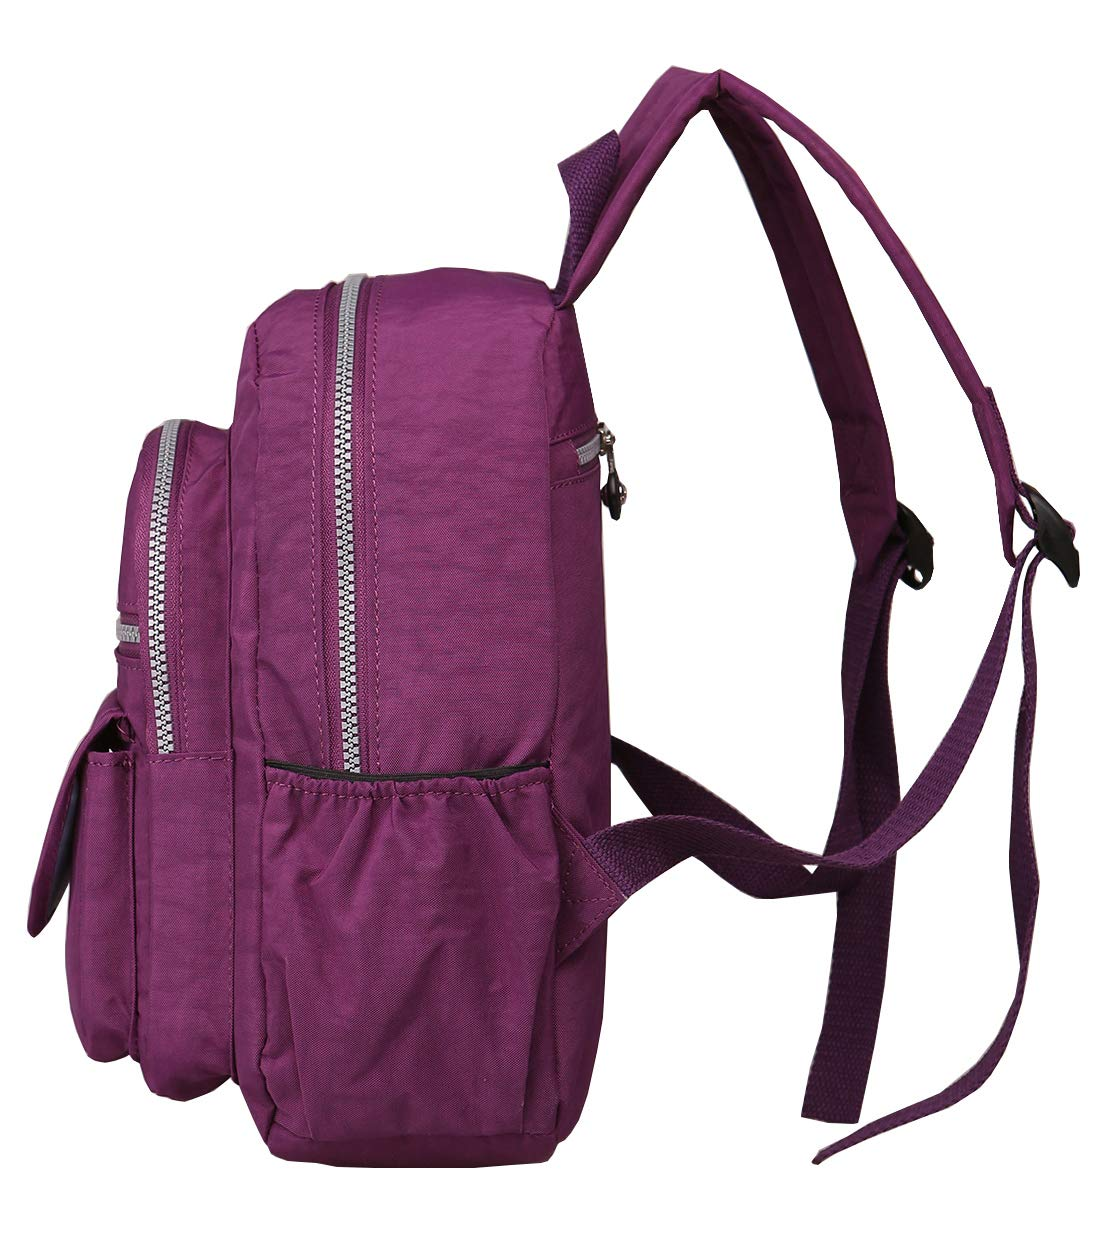 915eecce78fc Melord Small Daypack Outdoor LightWeight Backpack for Women Waterproof  Handbag